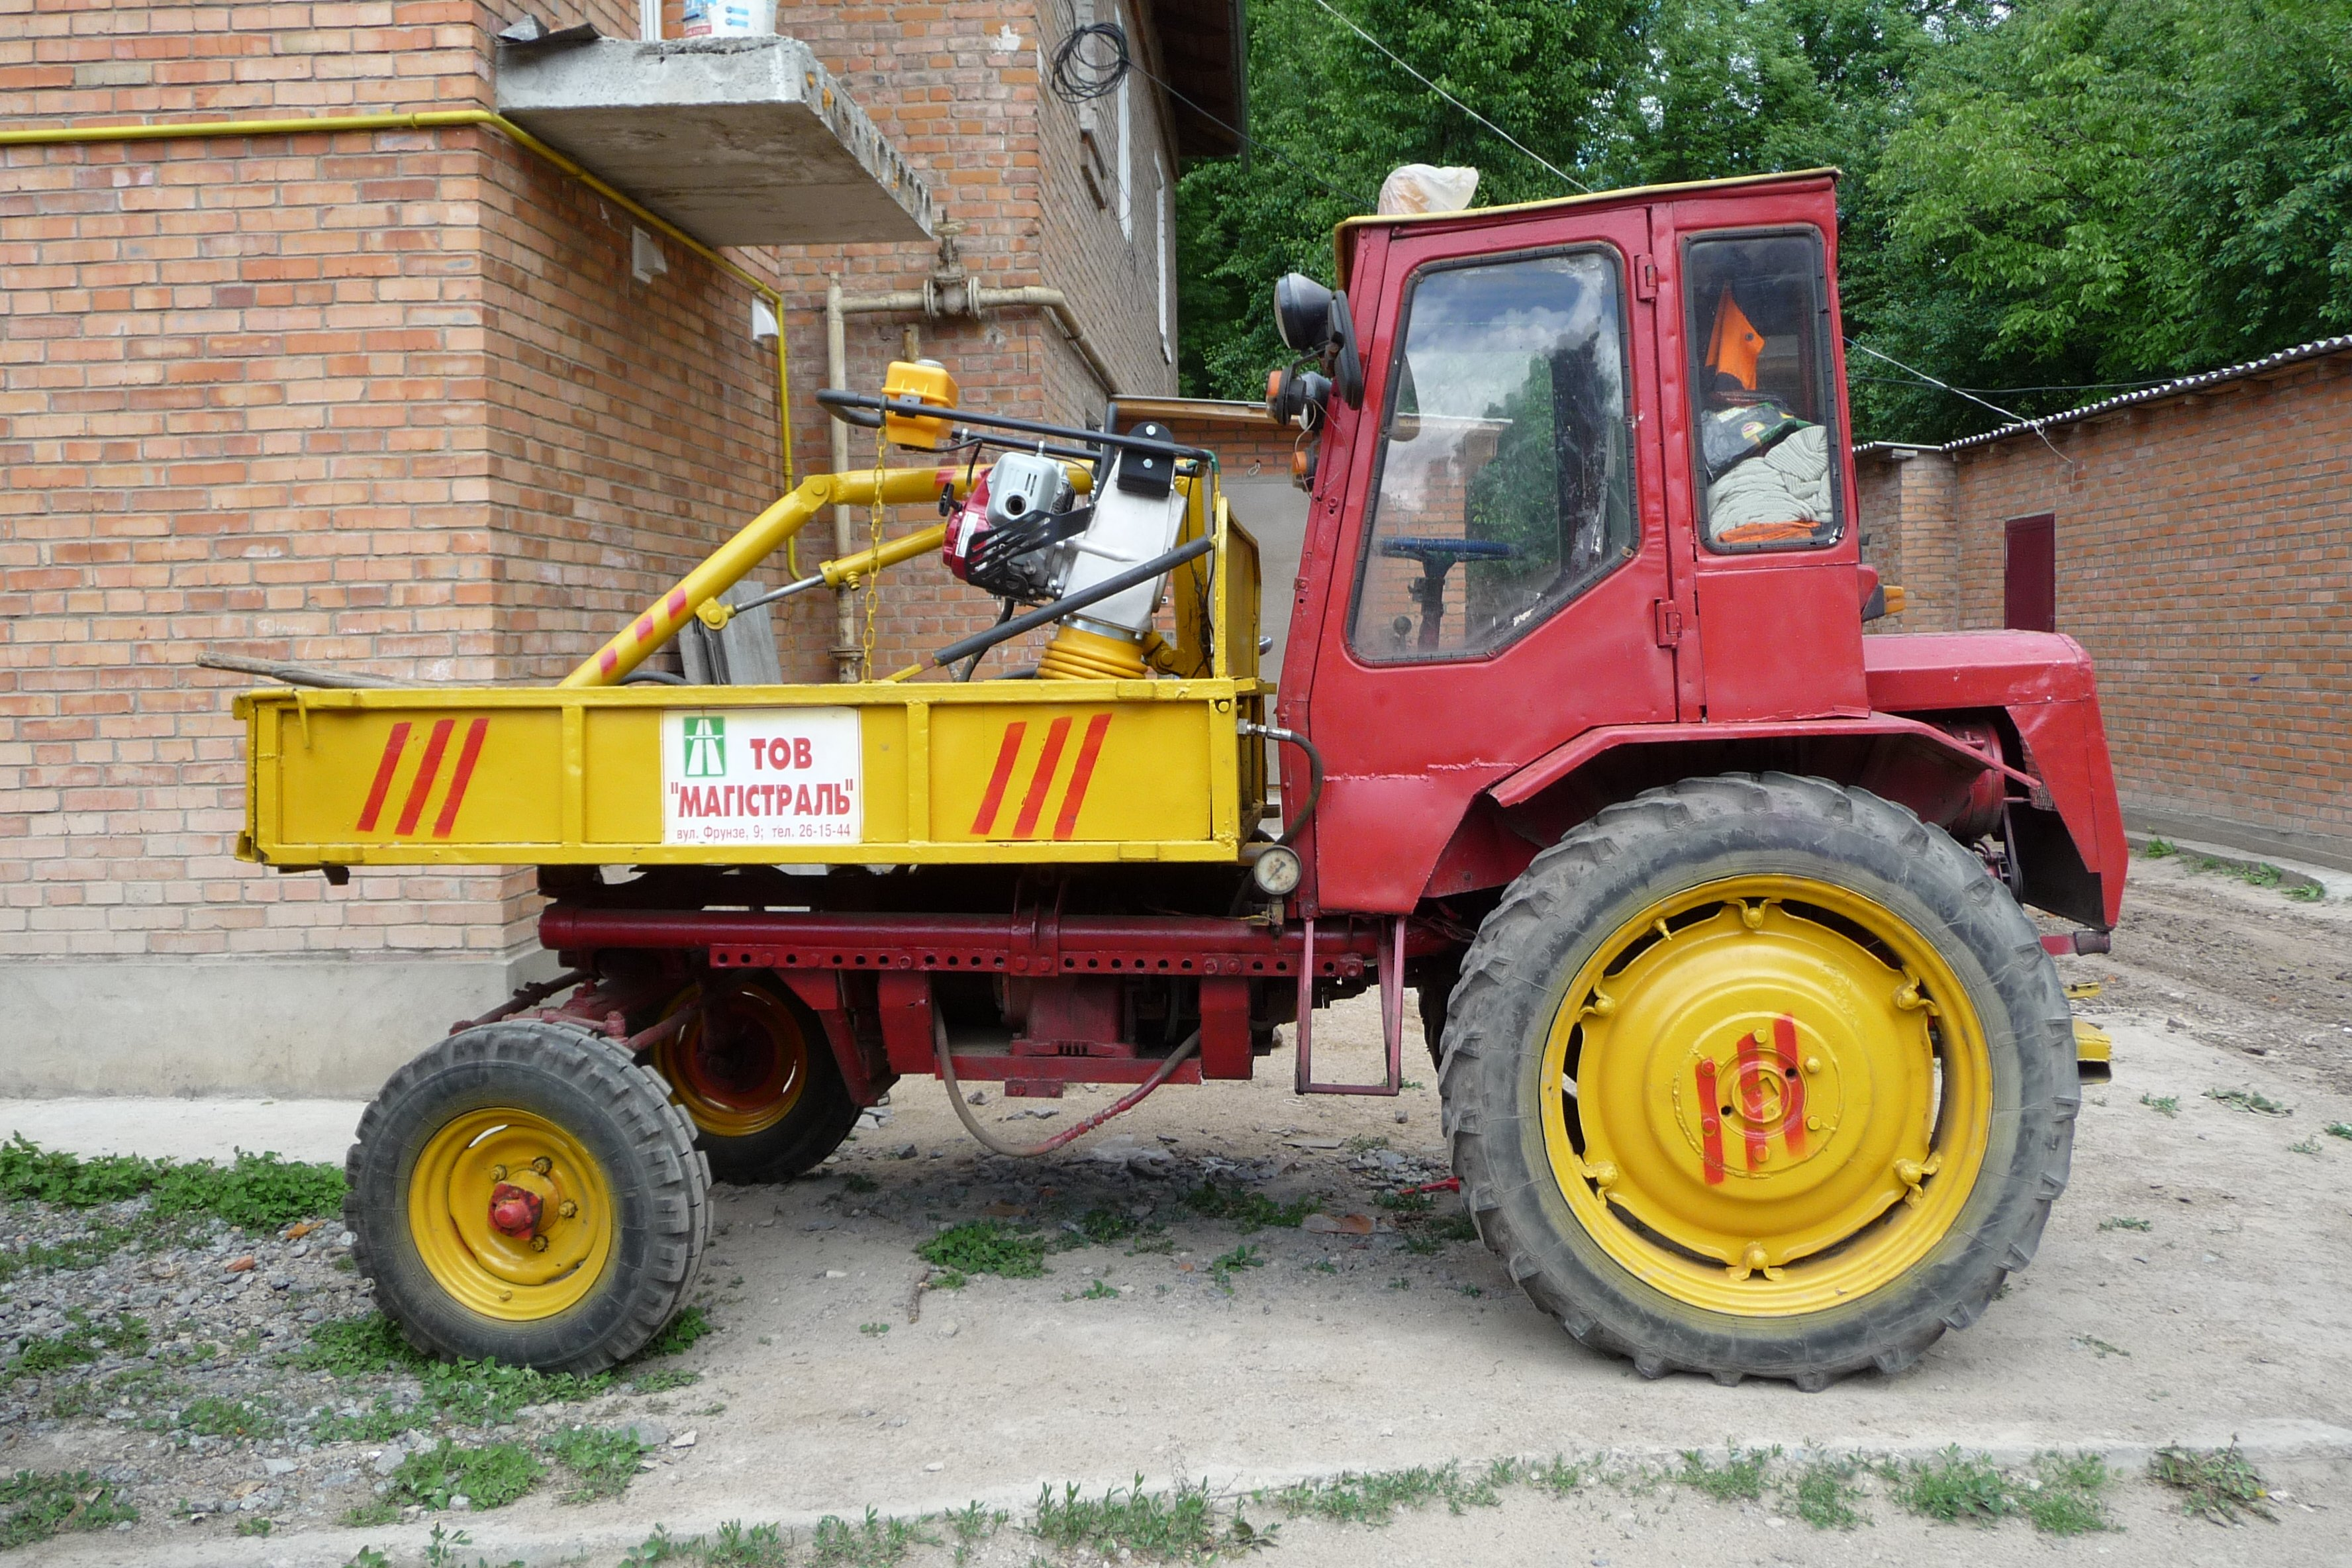 tractor_t-16m_2009_g1